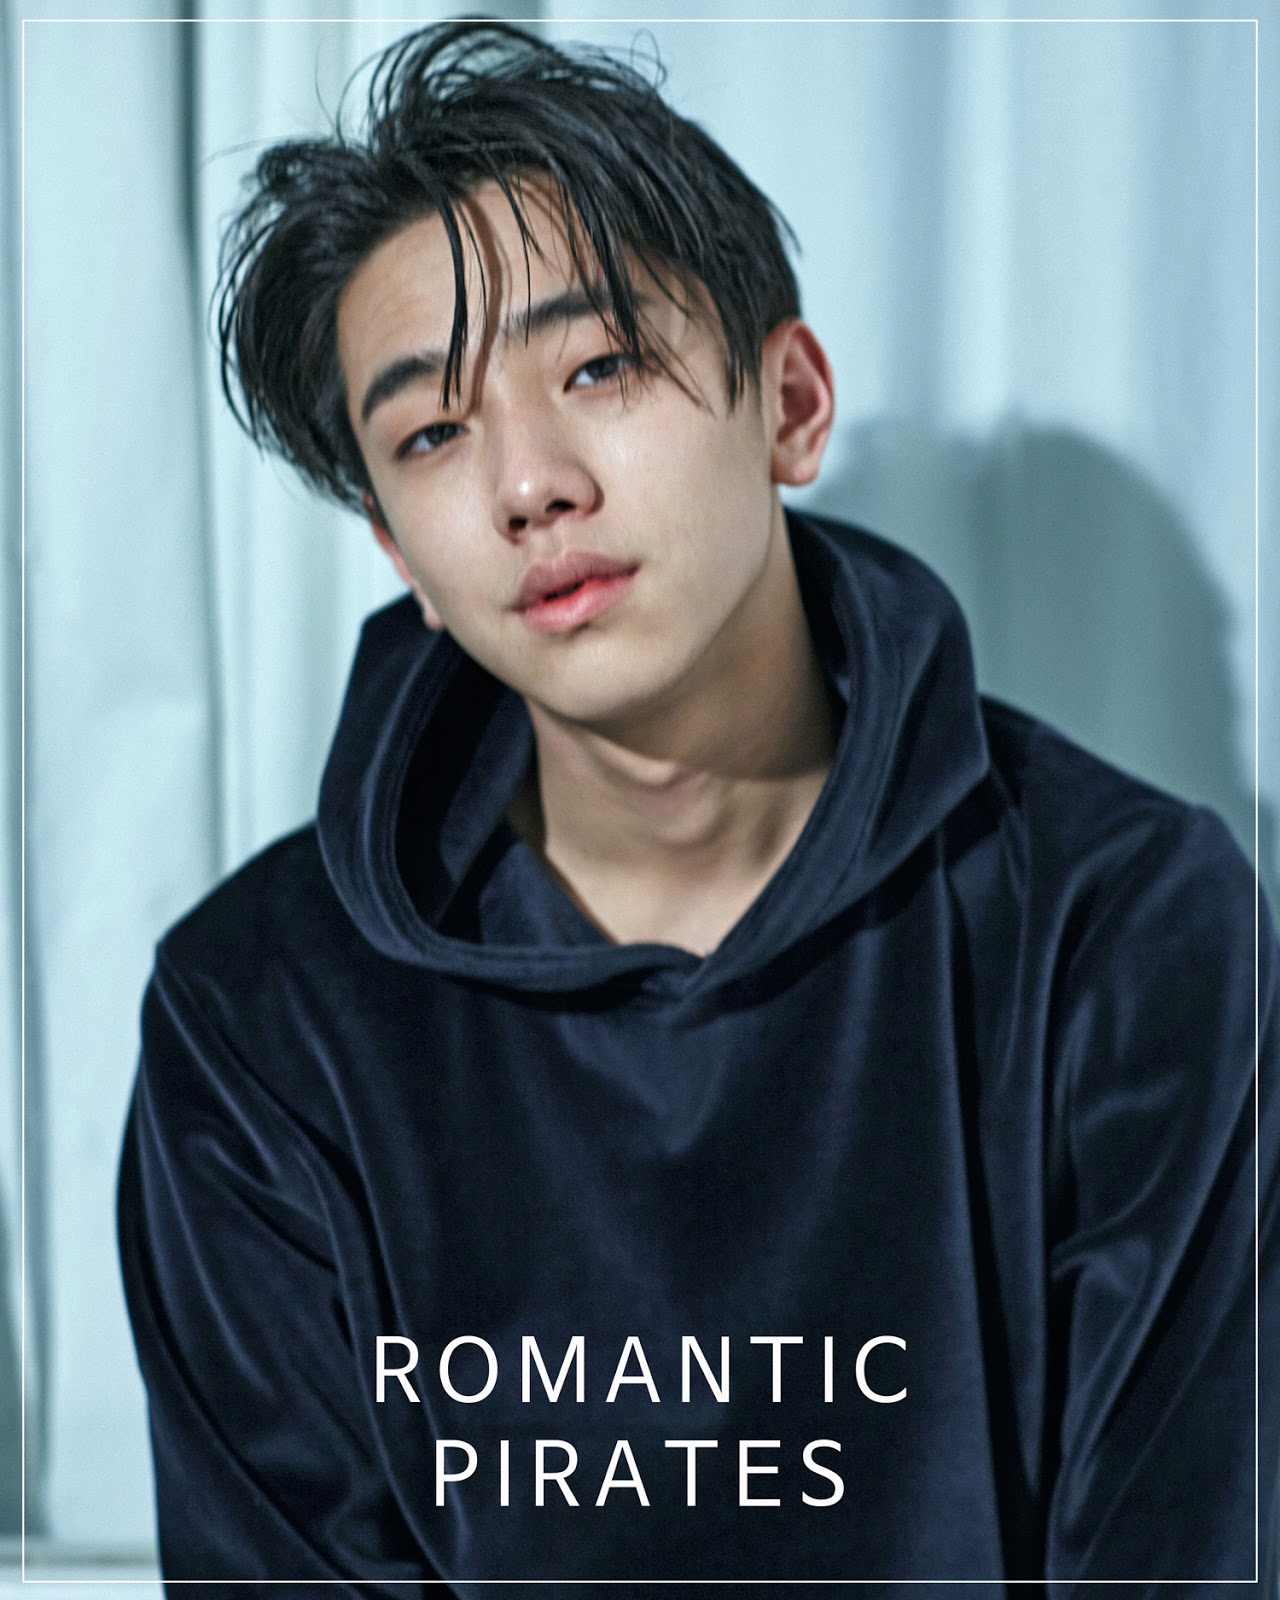 agencygarten: 2016 S/S ROMANTIC PIRATES LOOKBOOK MODEL. NAM YOON-SOO.